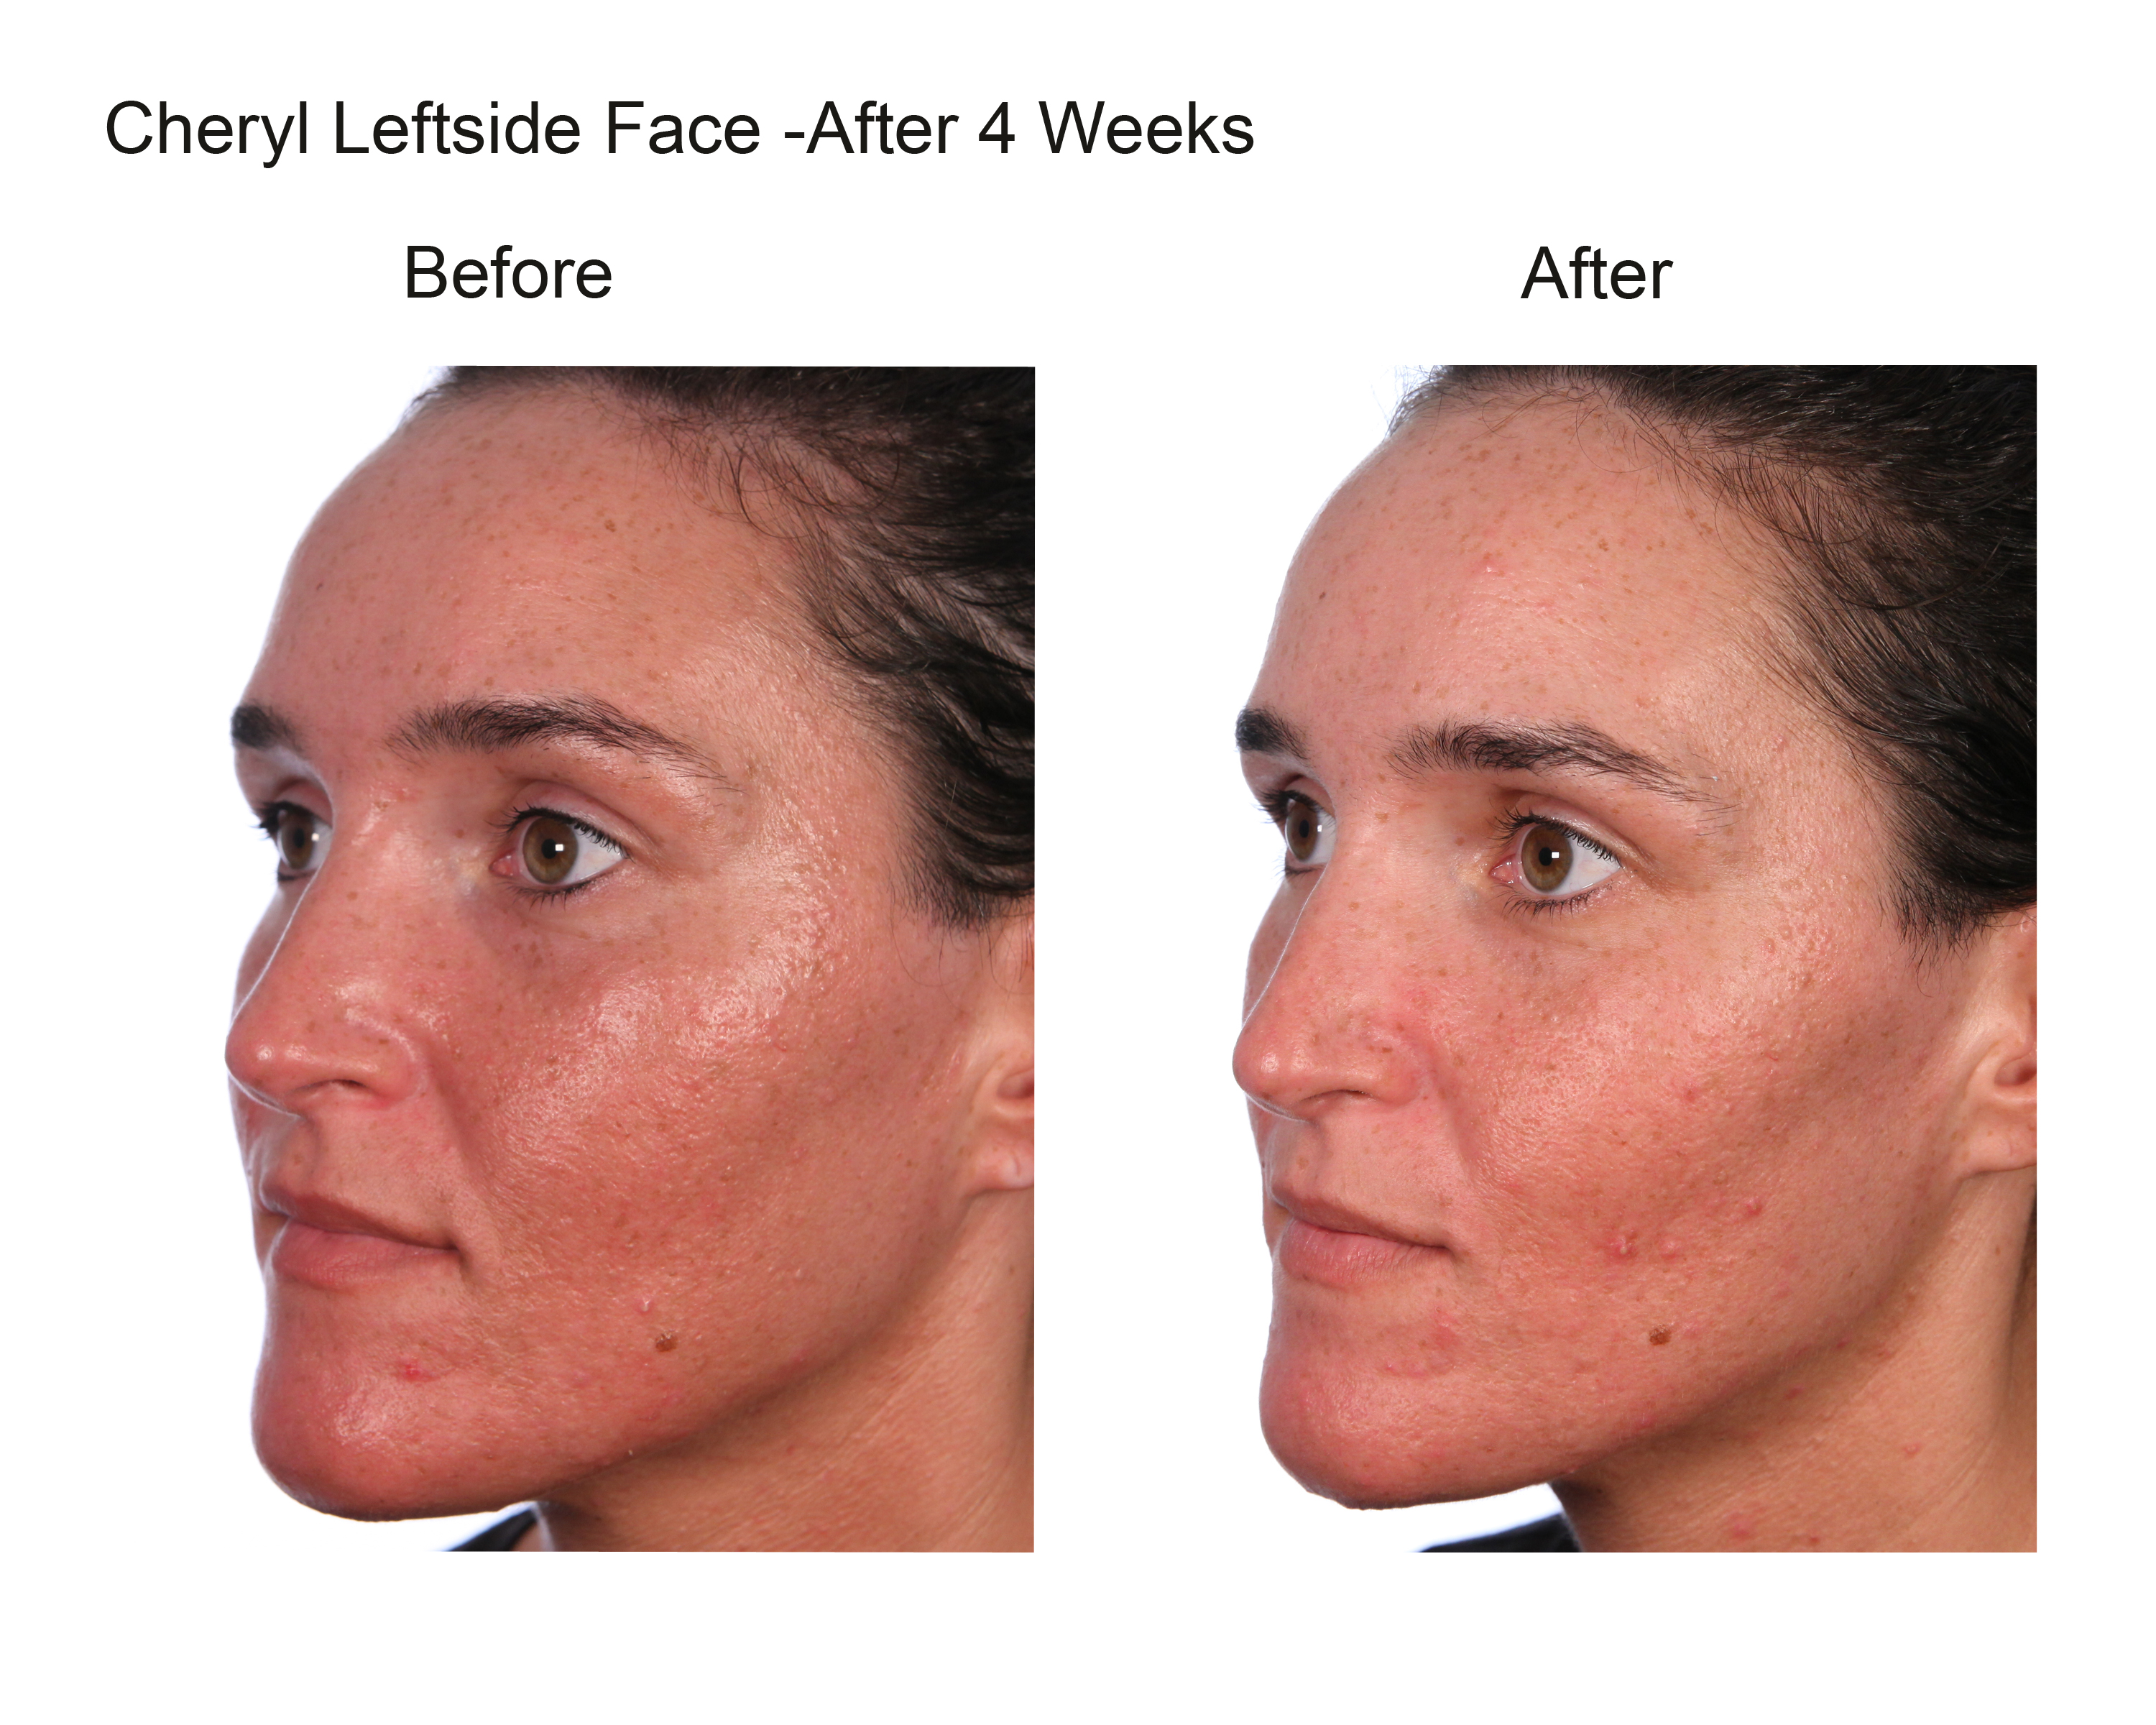 Cheryl Leftside Face After 4 Weeks